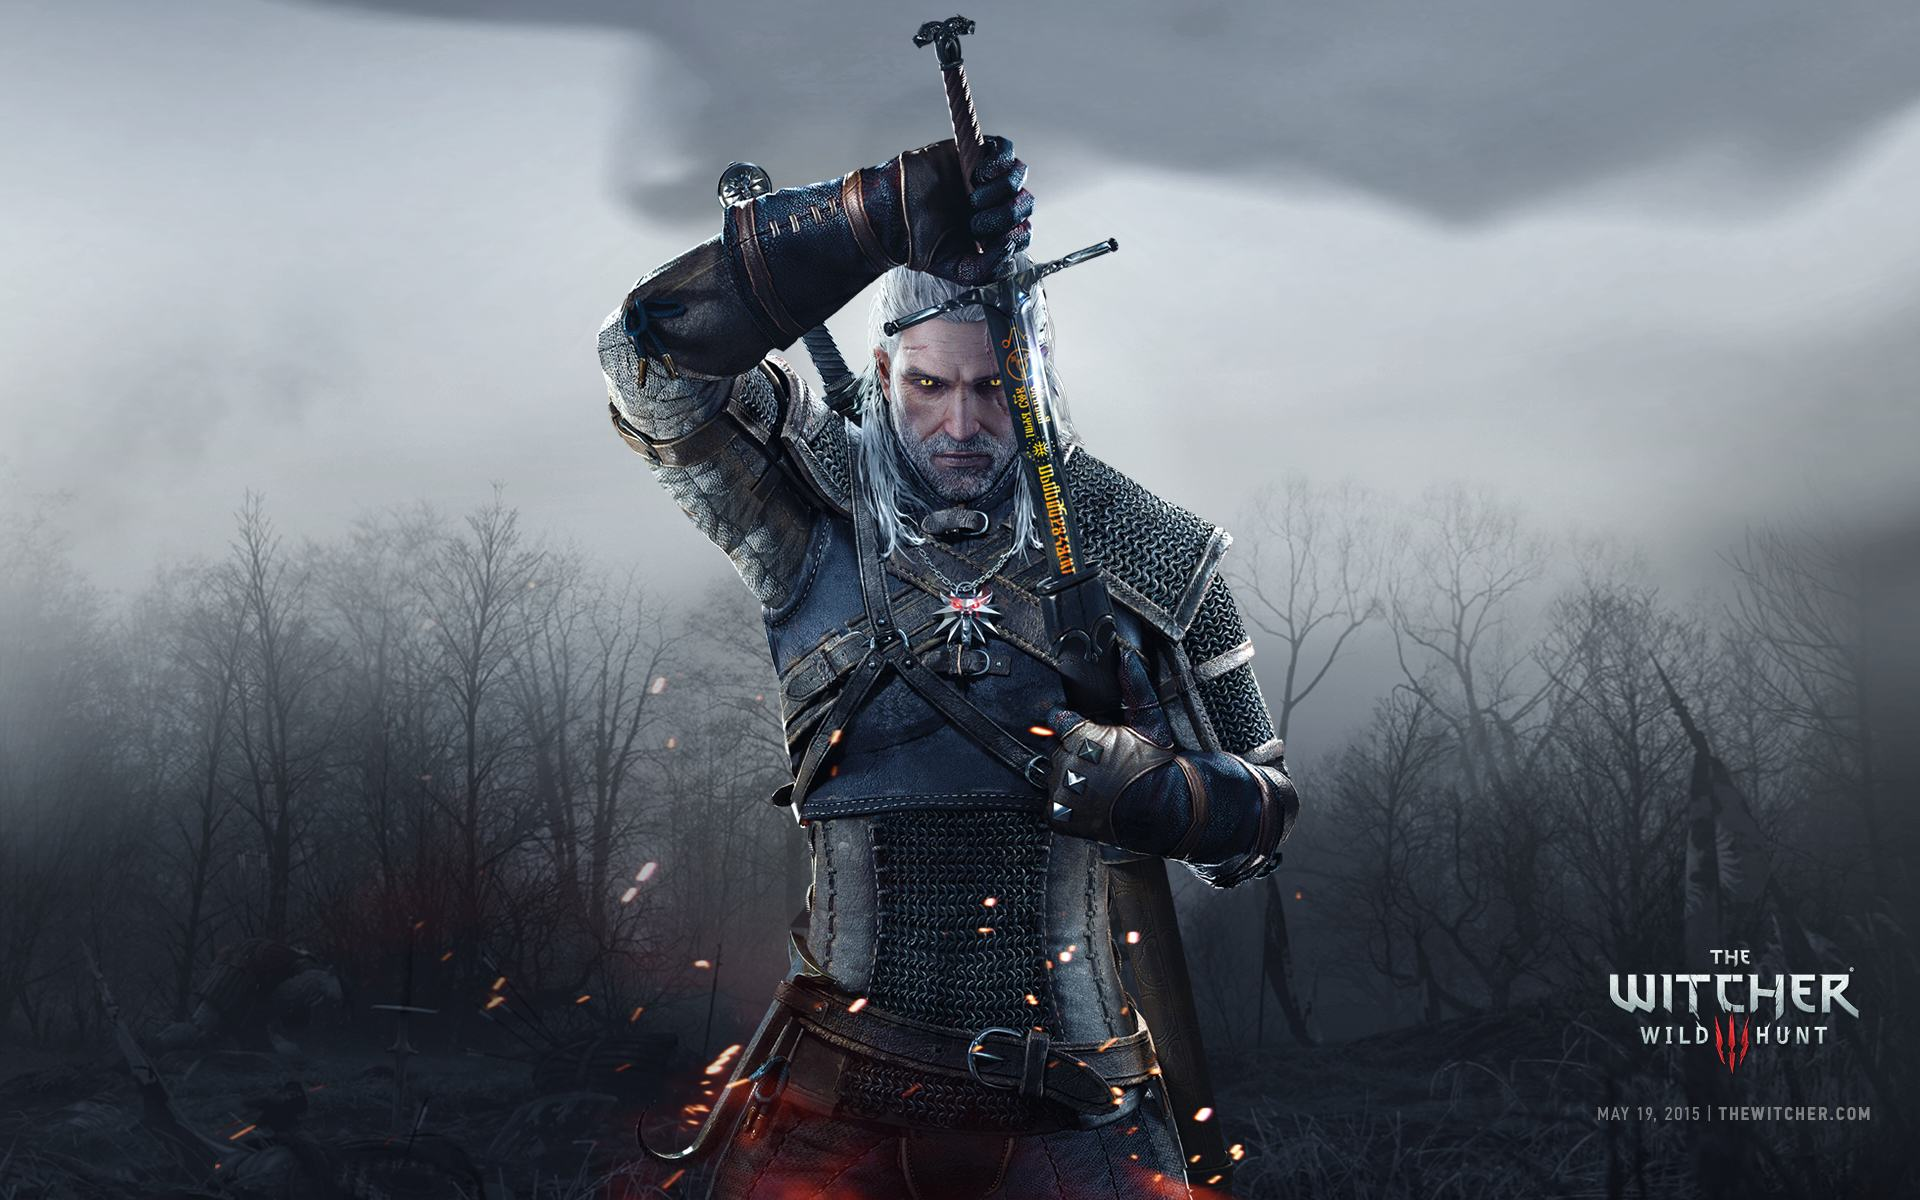 The Witcher Movie Coming To Cinemas In 2017, Gets The Mummy Producers UNILAD witcher3 en wallpaper wallpaper 7 1920x1200 143324591665216